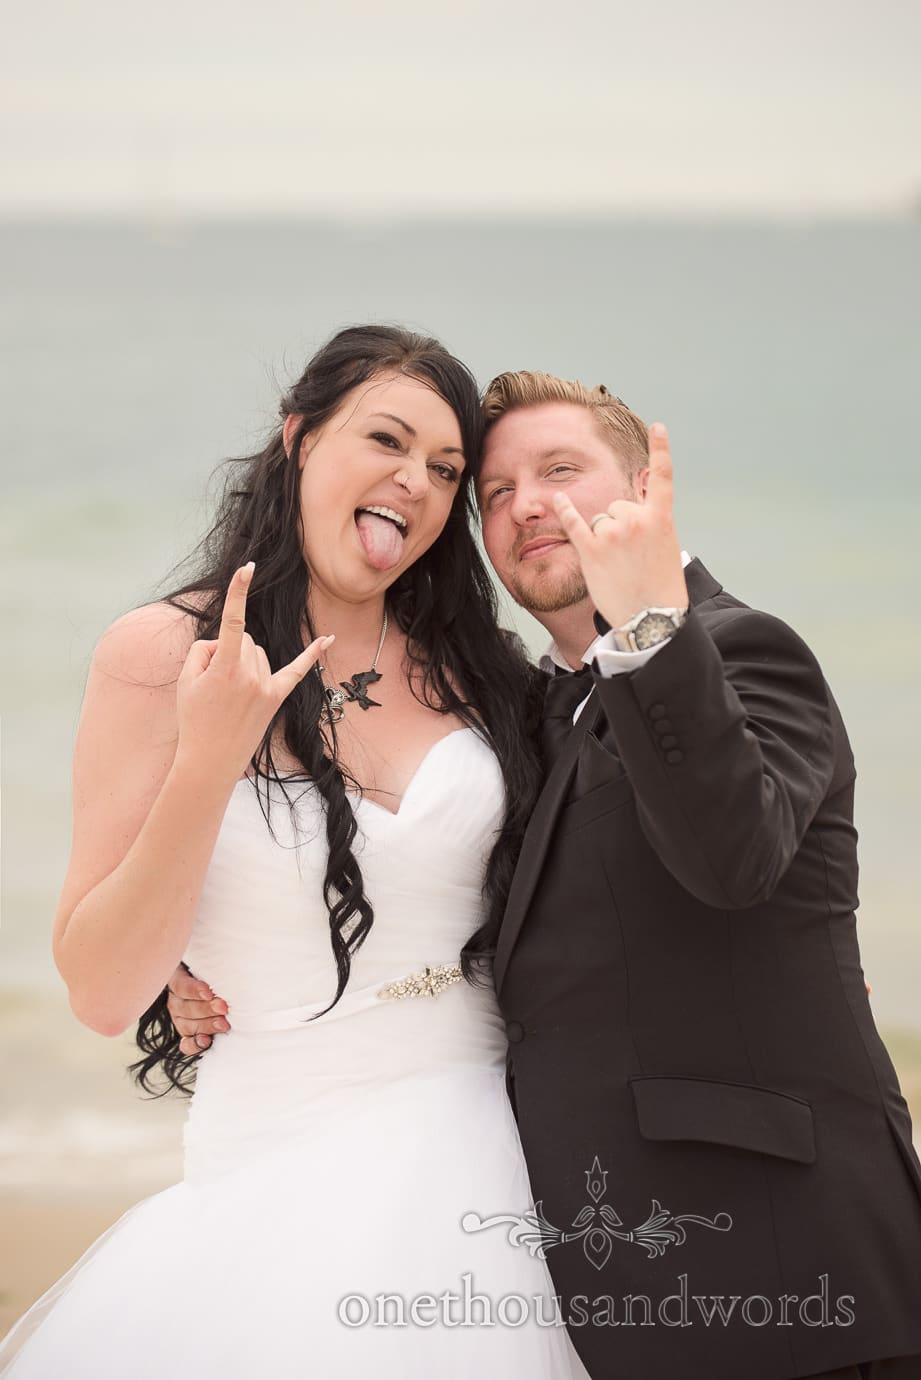 Rock and roll wedding bride and groom in black and white with rock hands by the sea